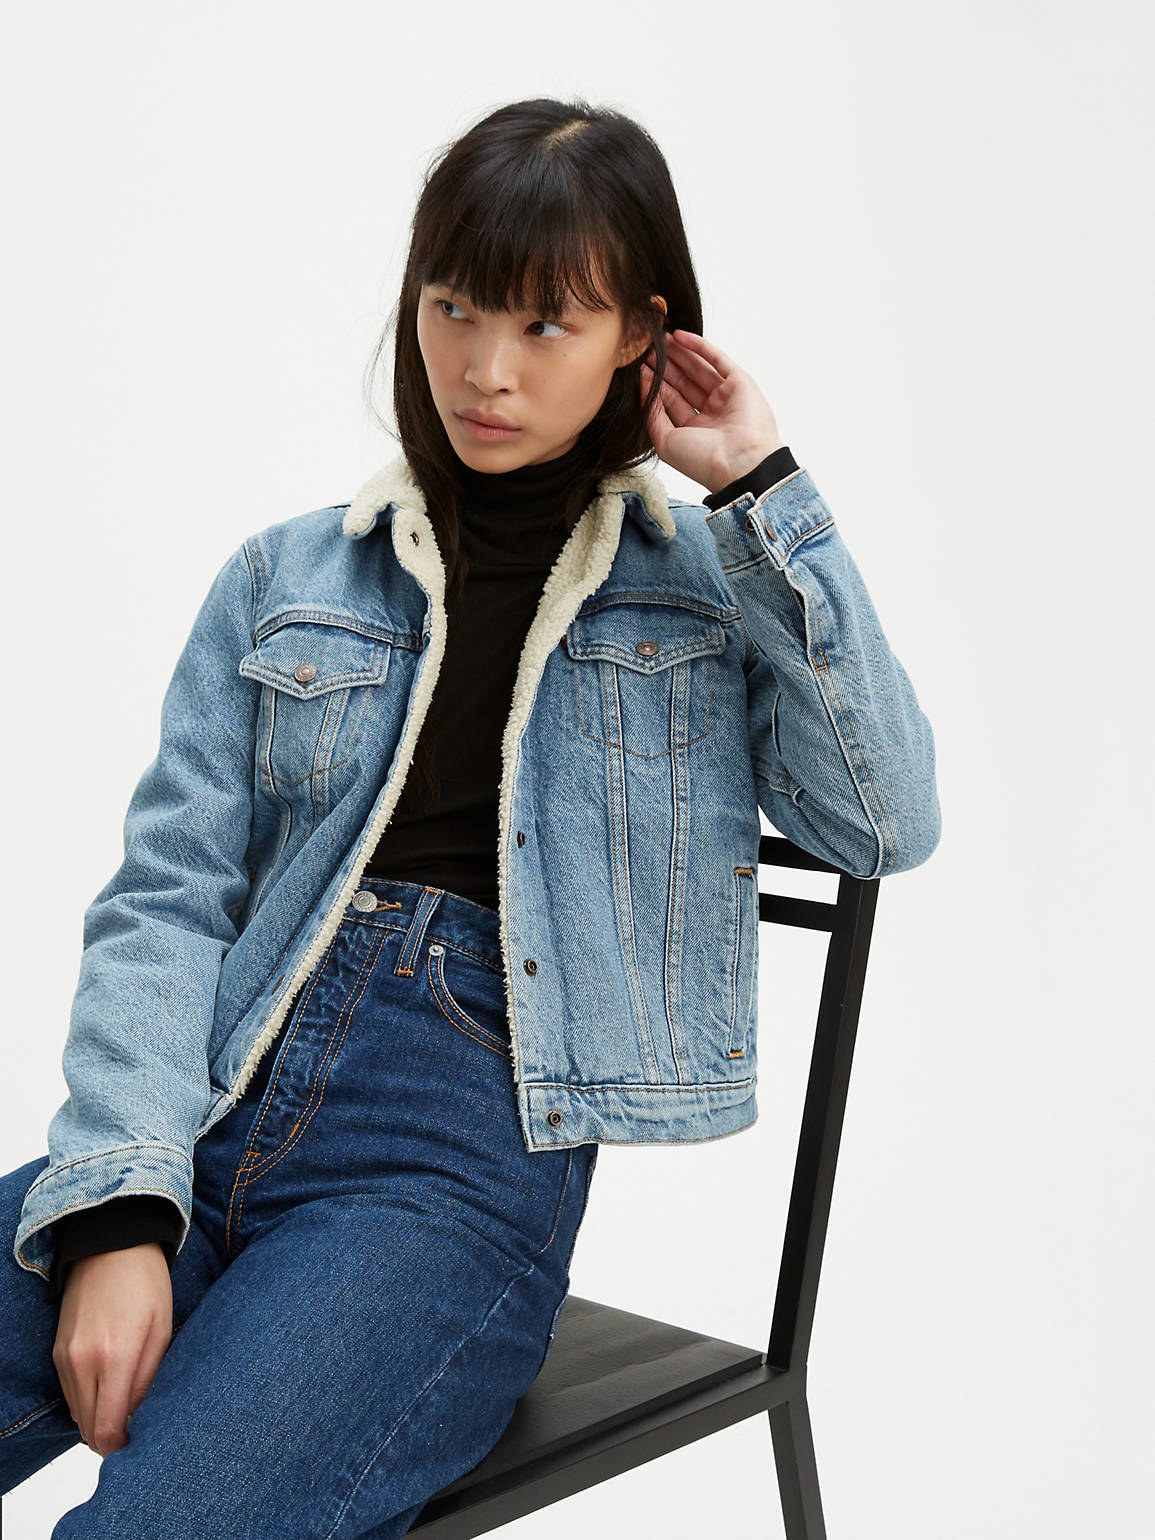 Model wearing denim jacket with press buttons